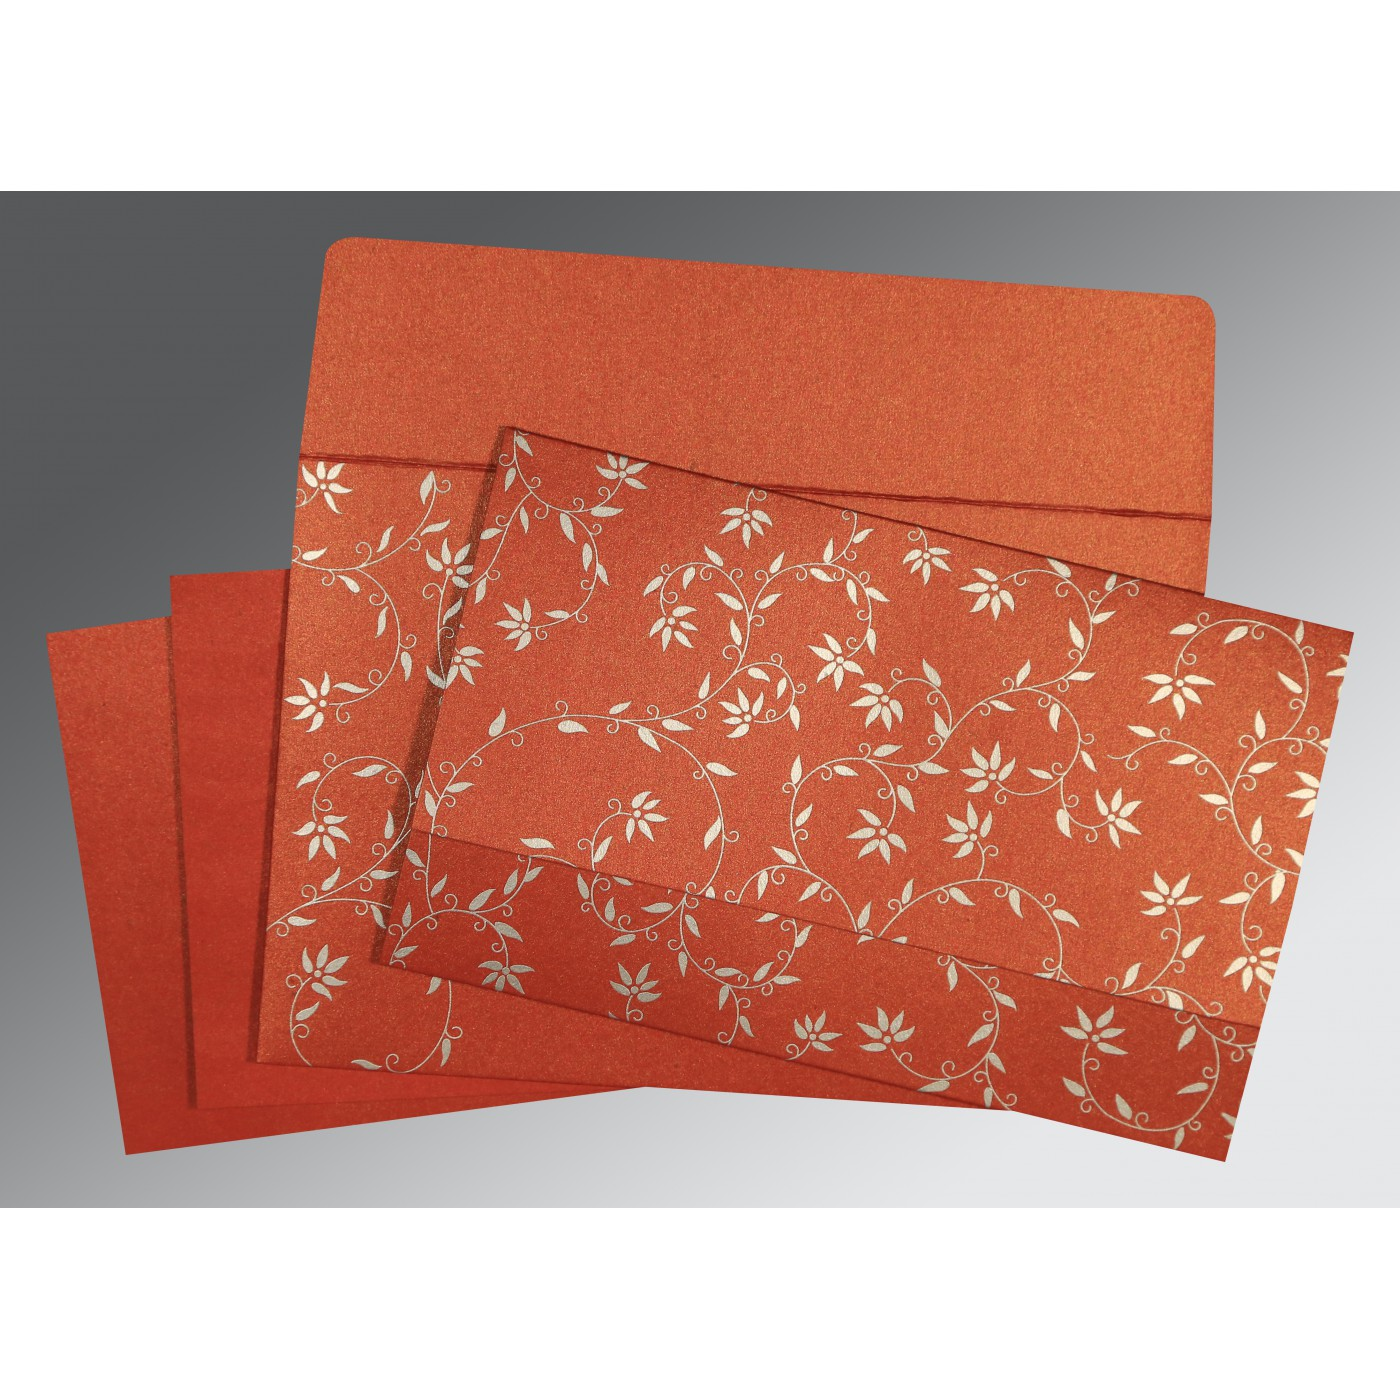 BRICK RED SHIMMERY FLORAL THEMED - SCREEN PRINTED WEDDING INVITATION : C-8226I - 123WeddingCards